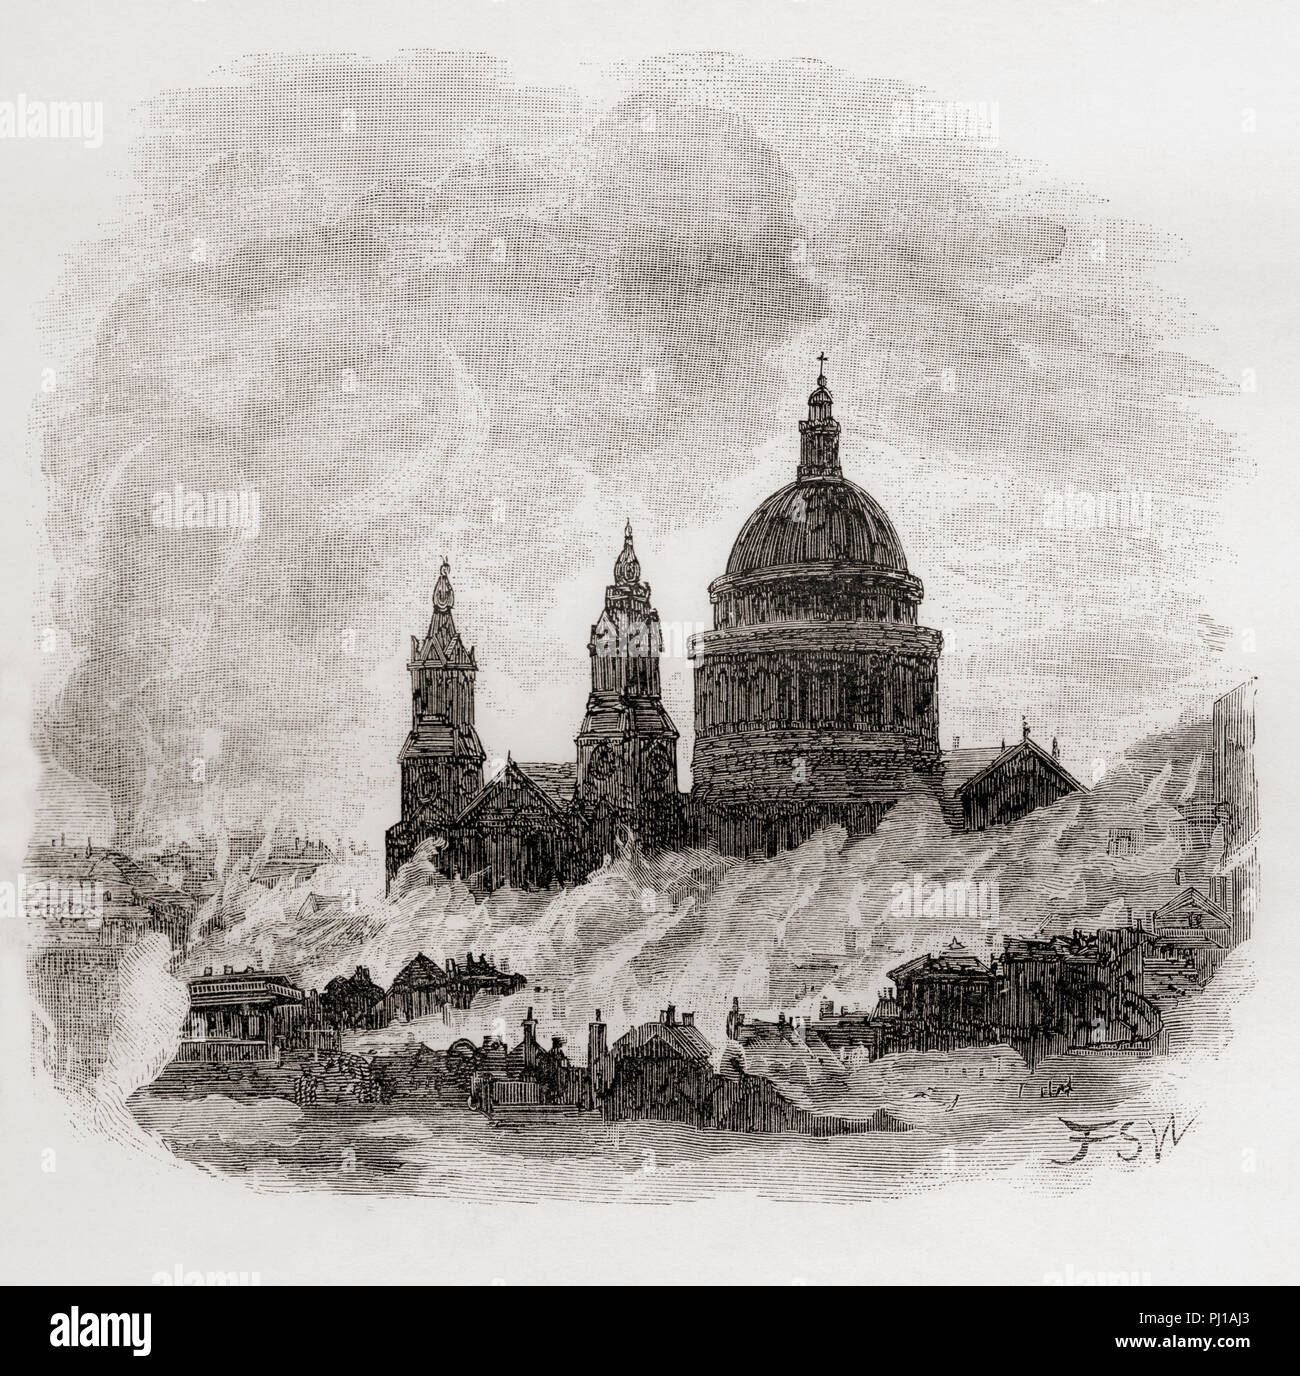 Scene depicting the Great Fire of London, 1666.  From London Pictures, published 1890. - Stock Image